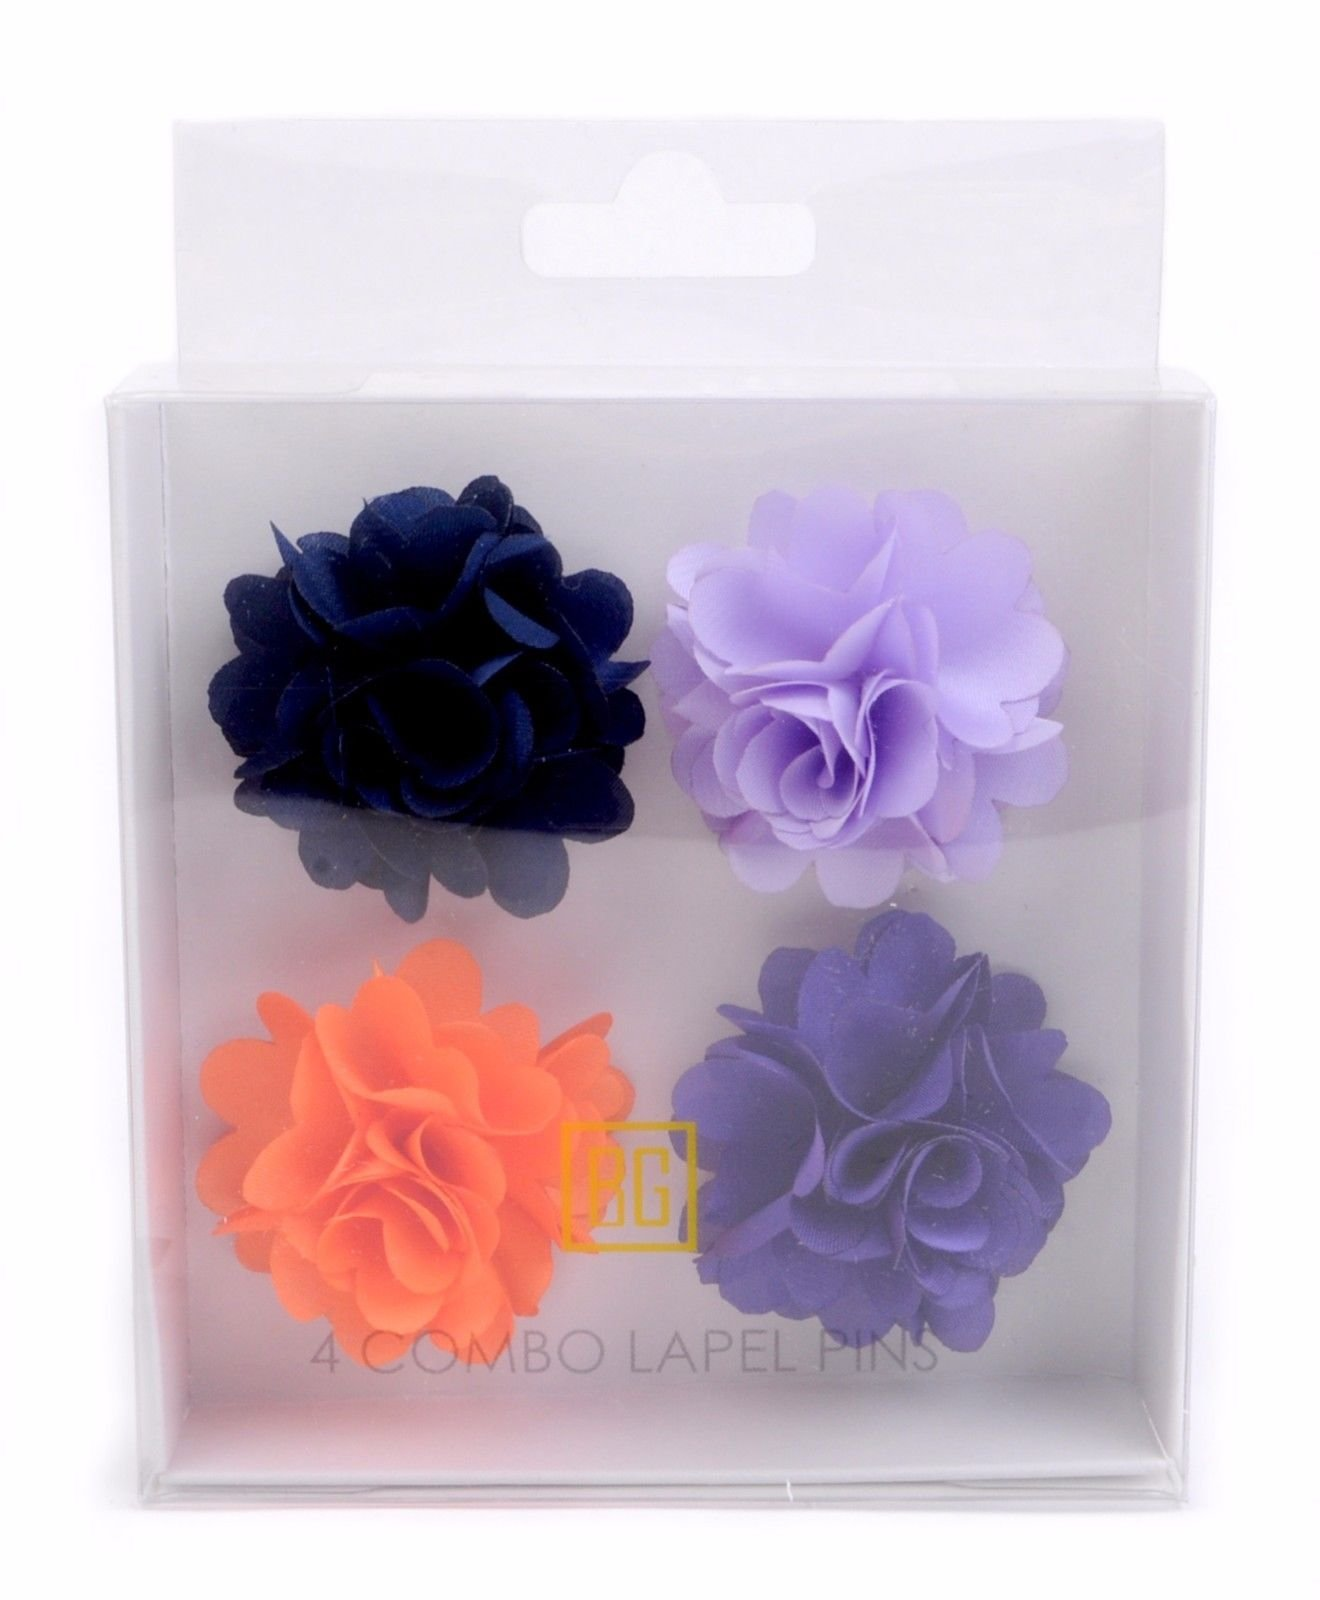 BG-Mini-Bouquet-Clutch-Back-Flower-Tuxedo-Suit-Lapel-Pins-Boutonniere-4-Pack-Set thumbnail 23